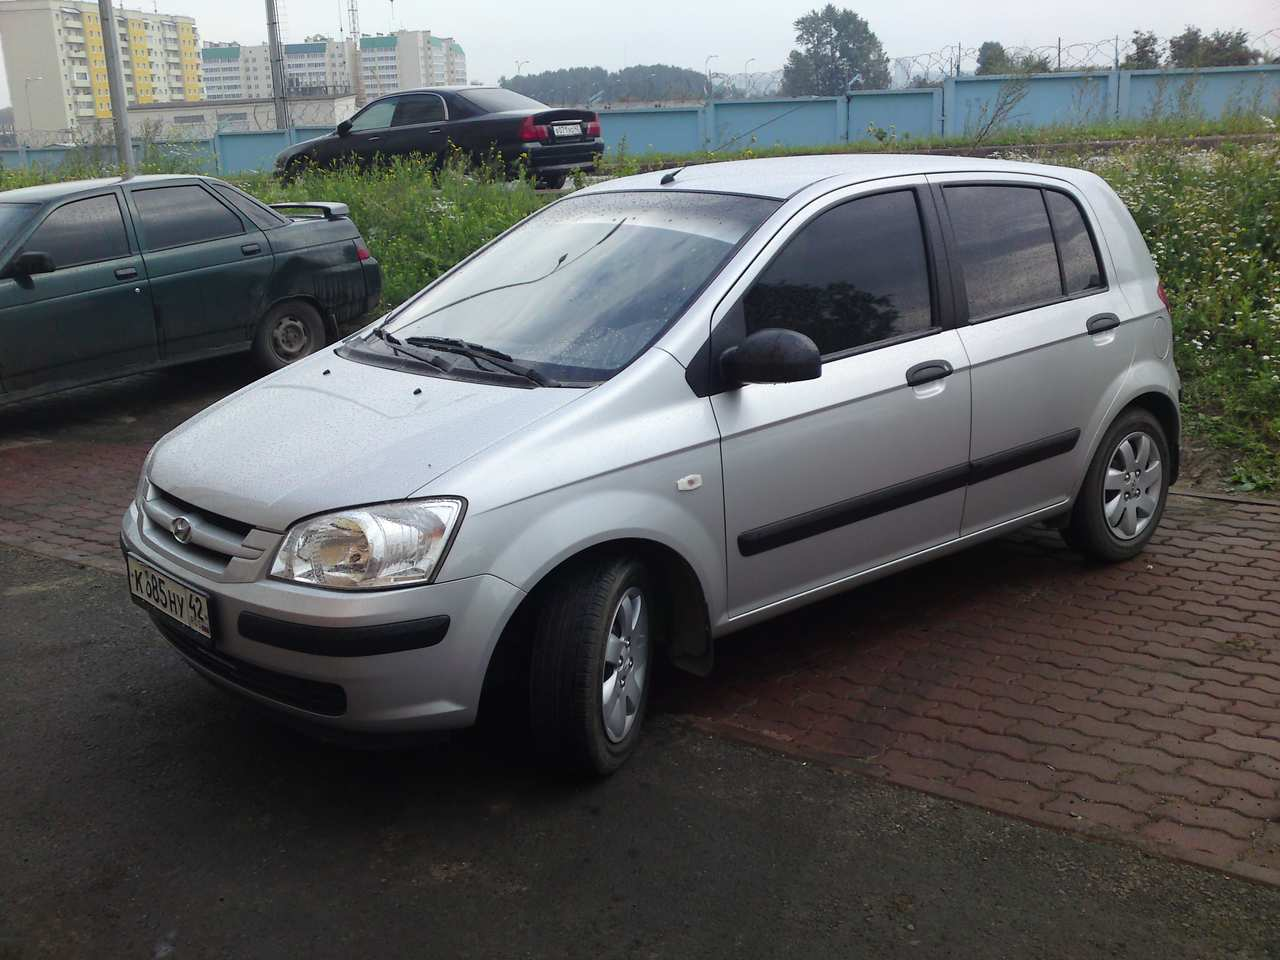 2005 hyundai getz pics 1 3 gasoline ff manual for sale. Black Bedroom Furniture Sets. Home Design Ideas